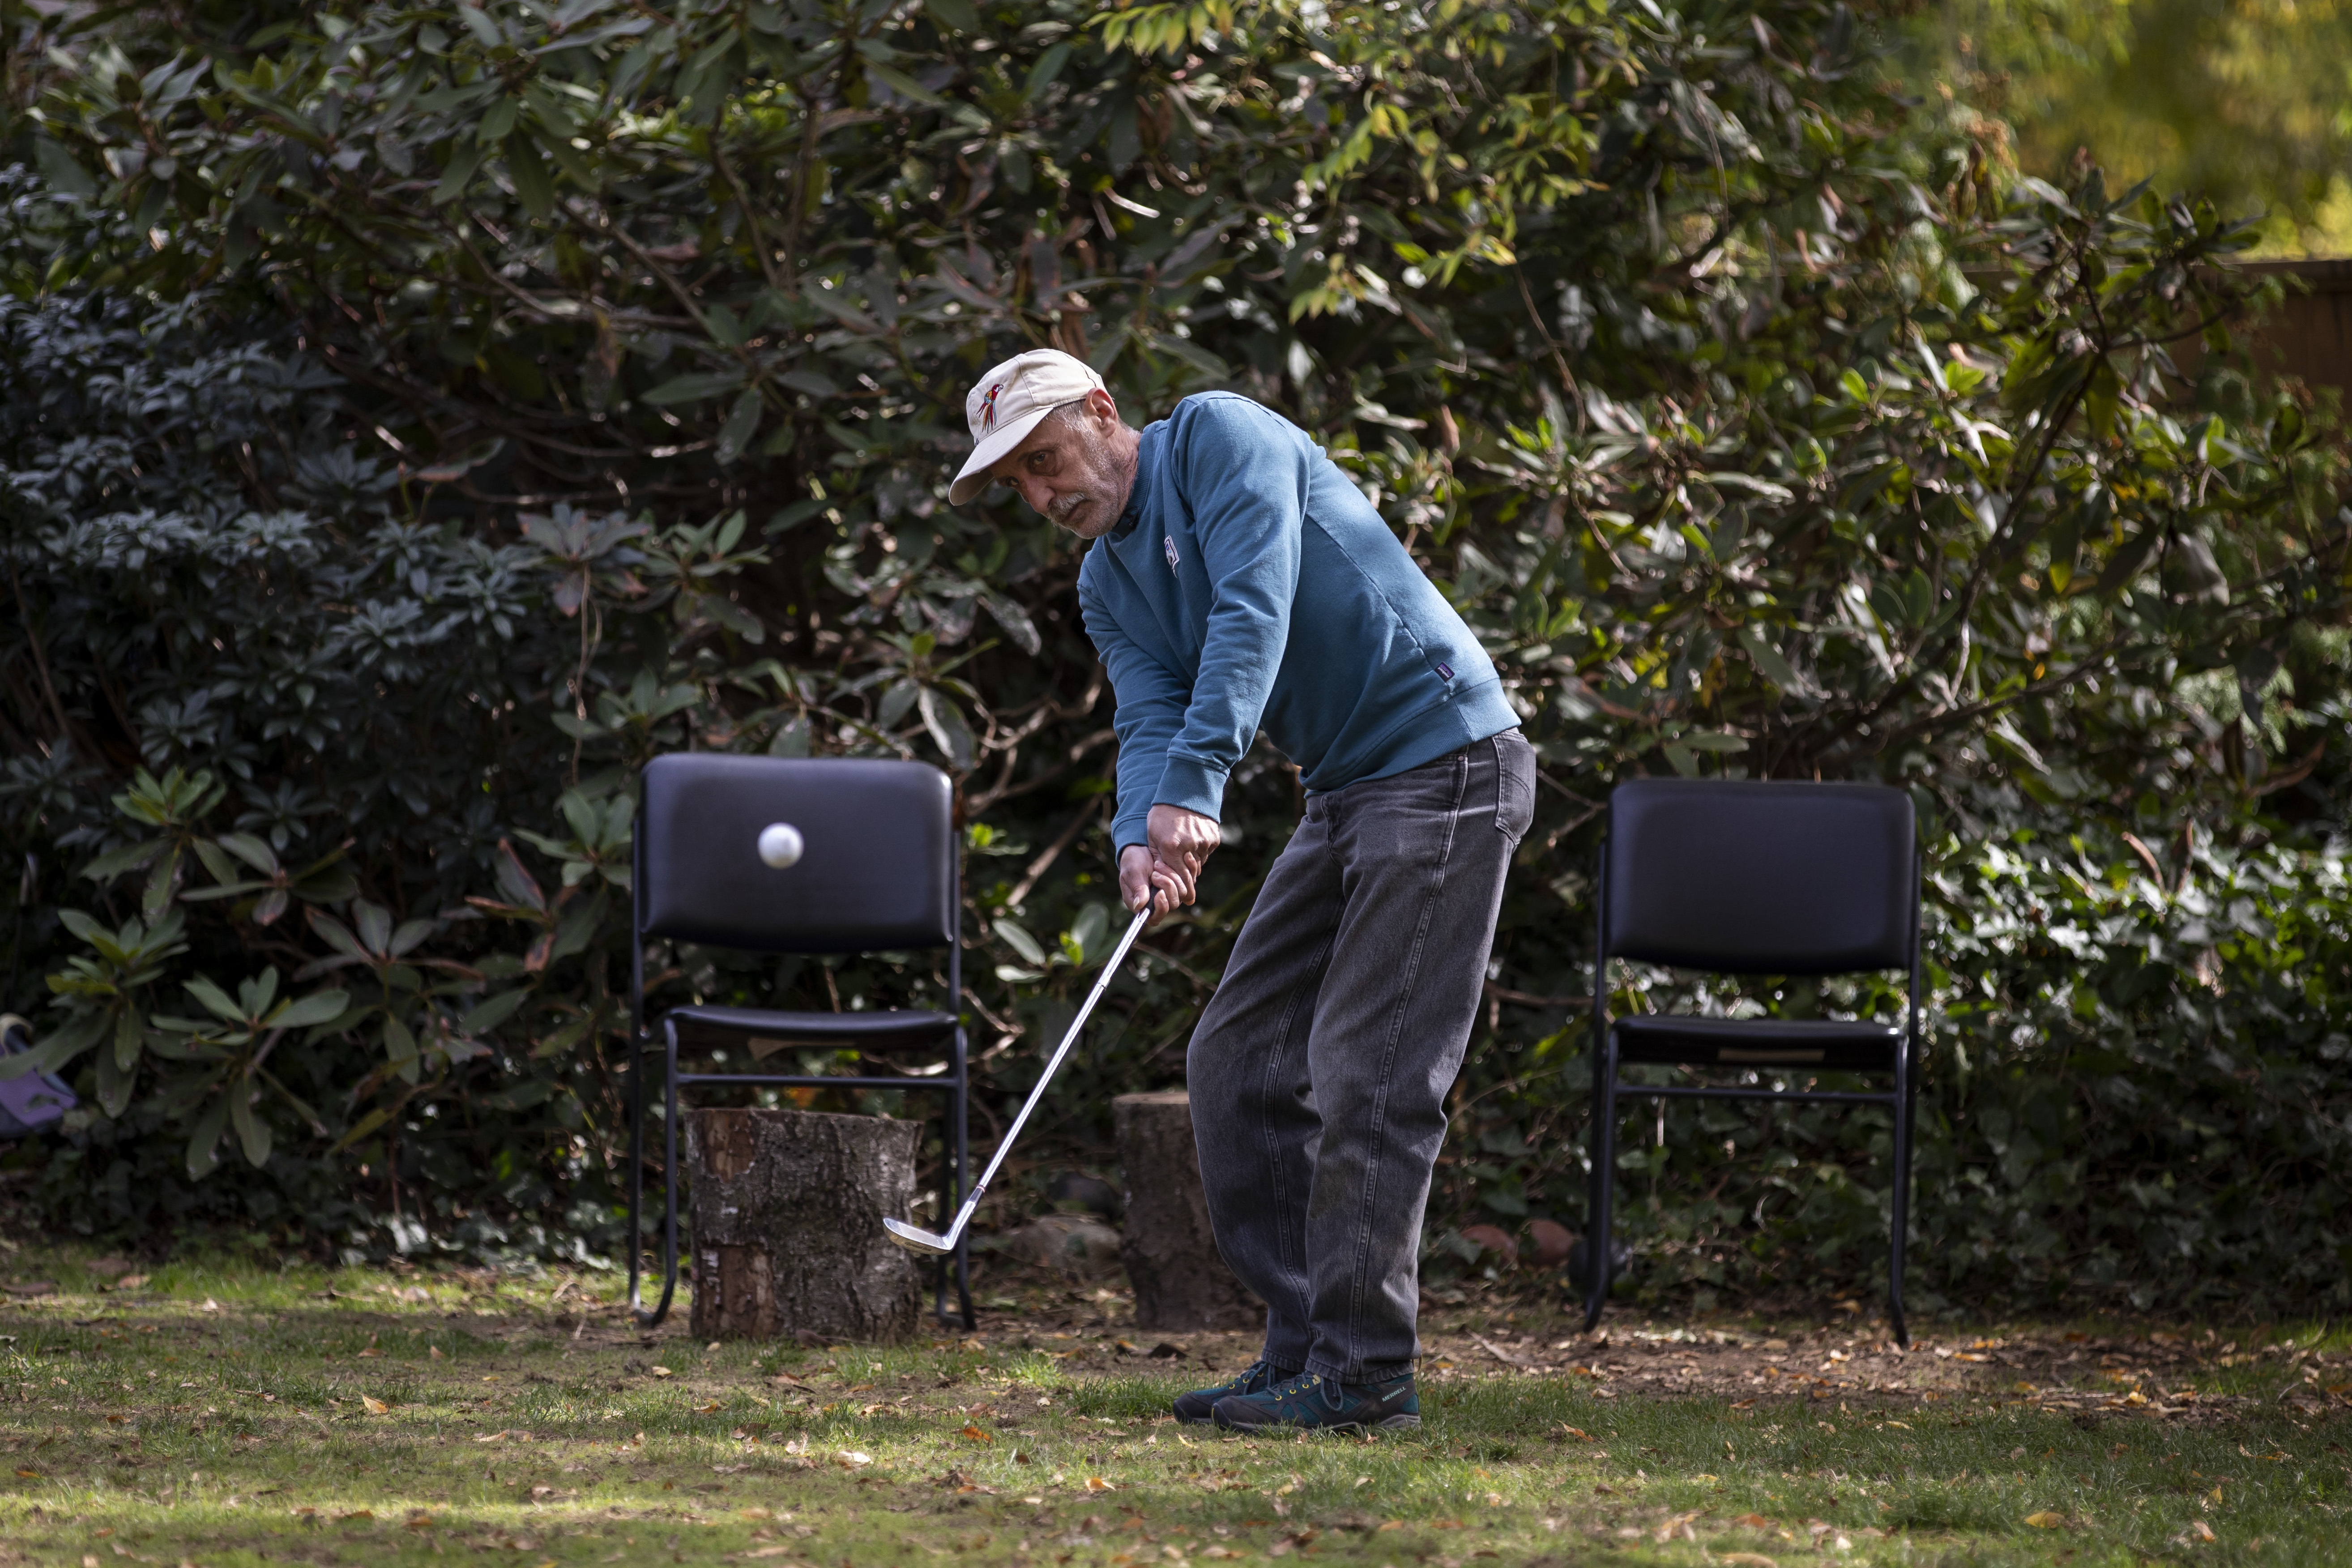 Charlie Smyth enjoys hitting the golf ball in his backyard now that he has settled into his housing unit. (Ben Nelms/CBC)